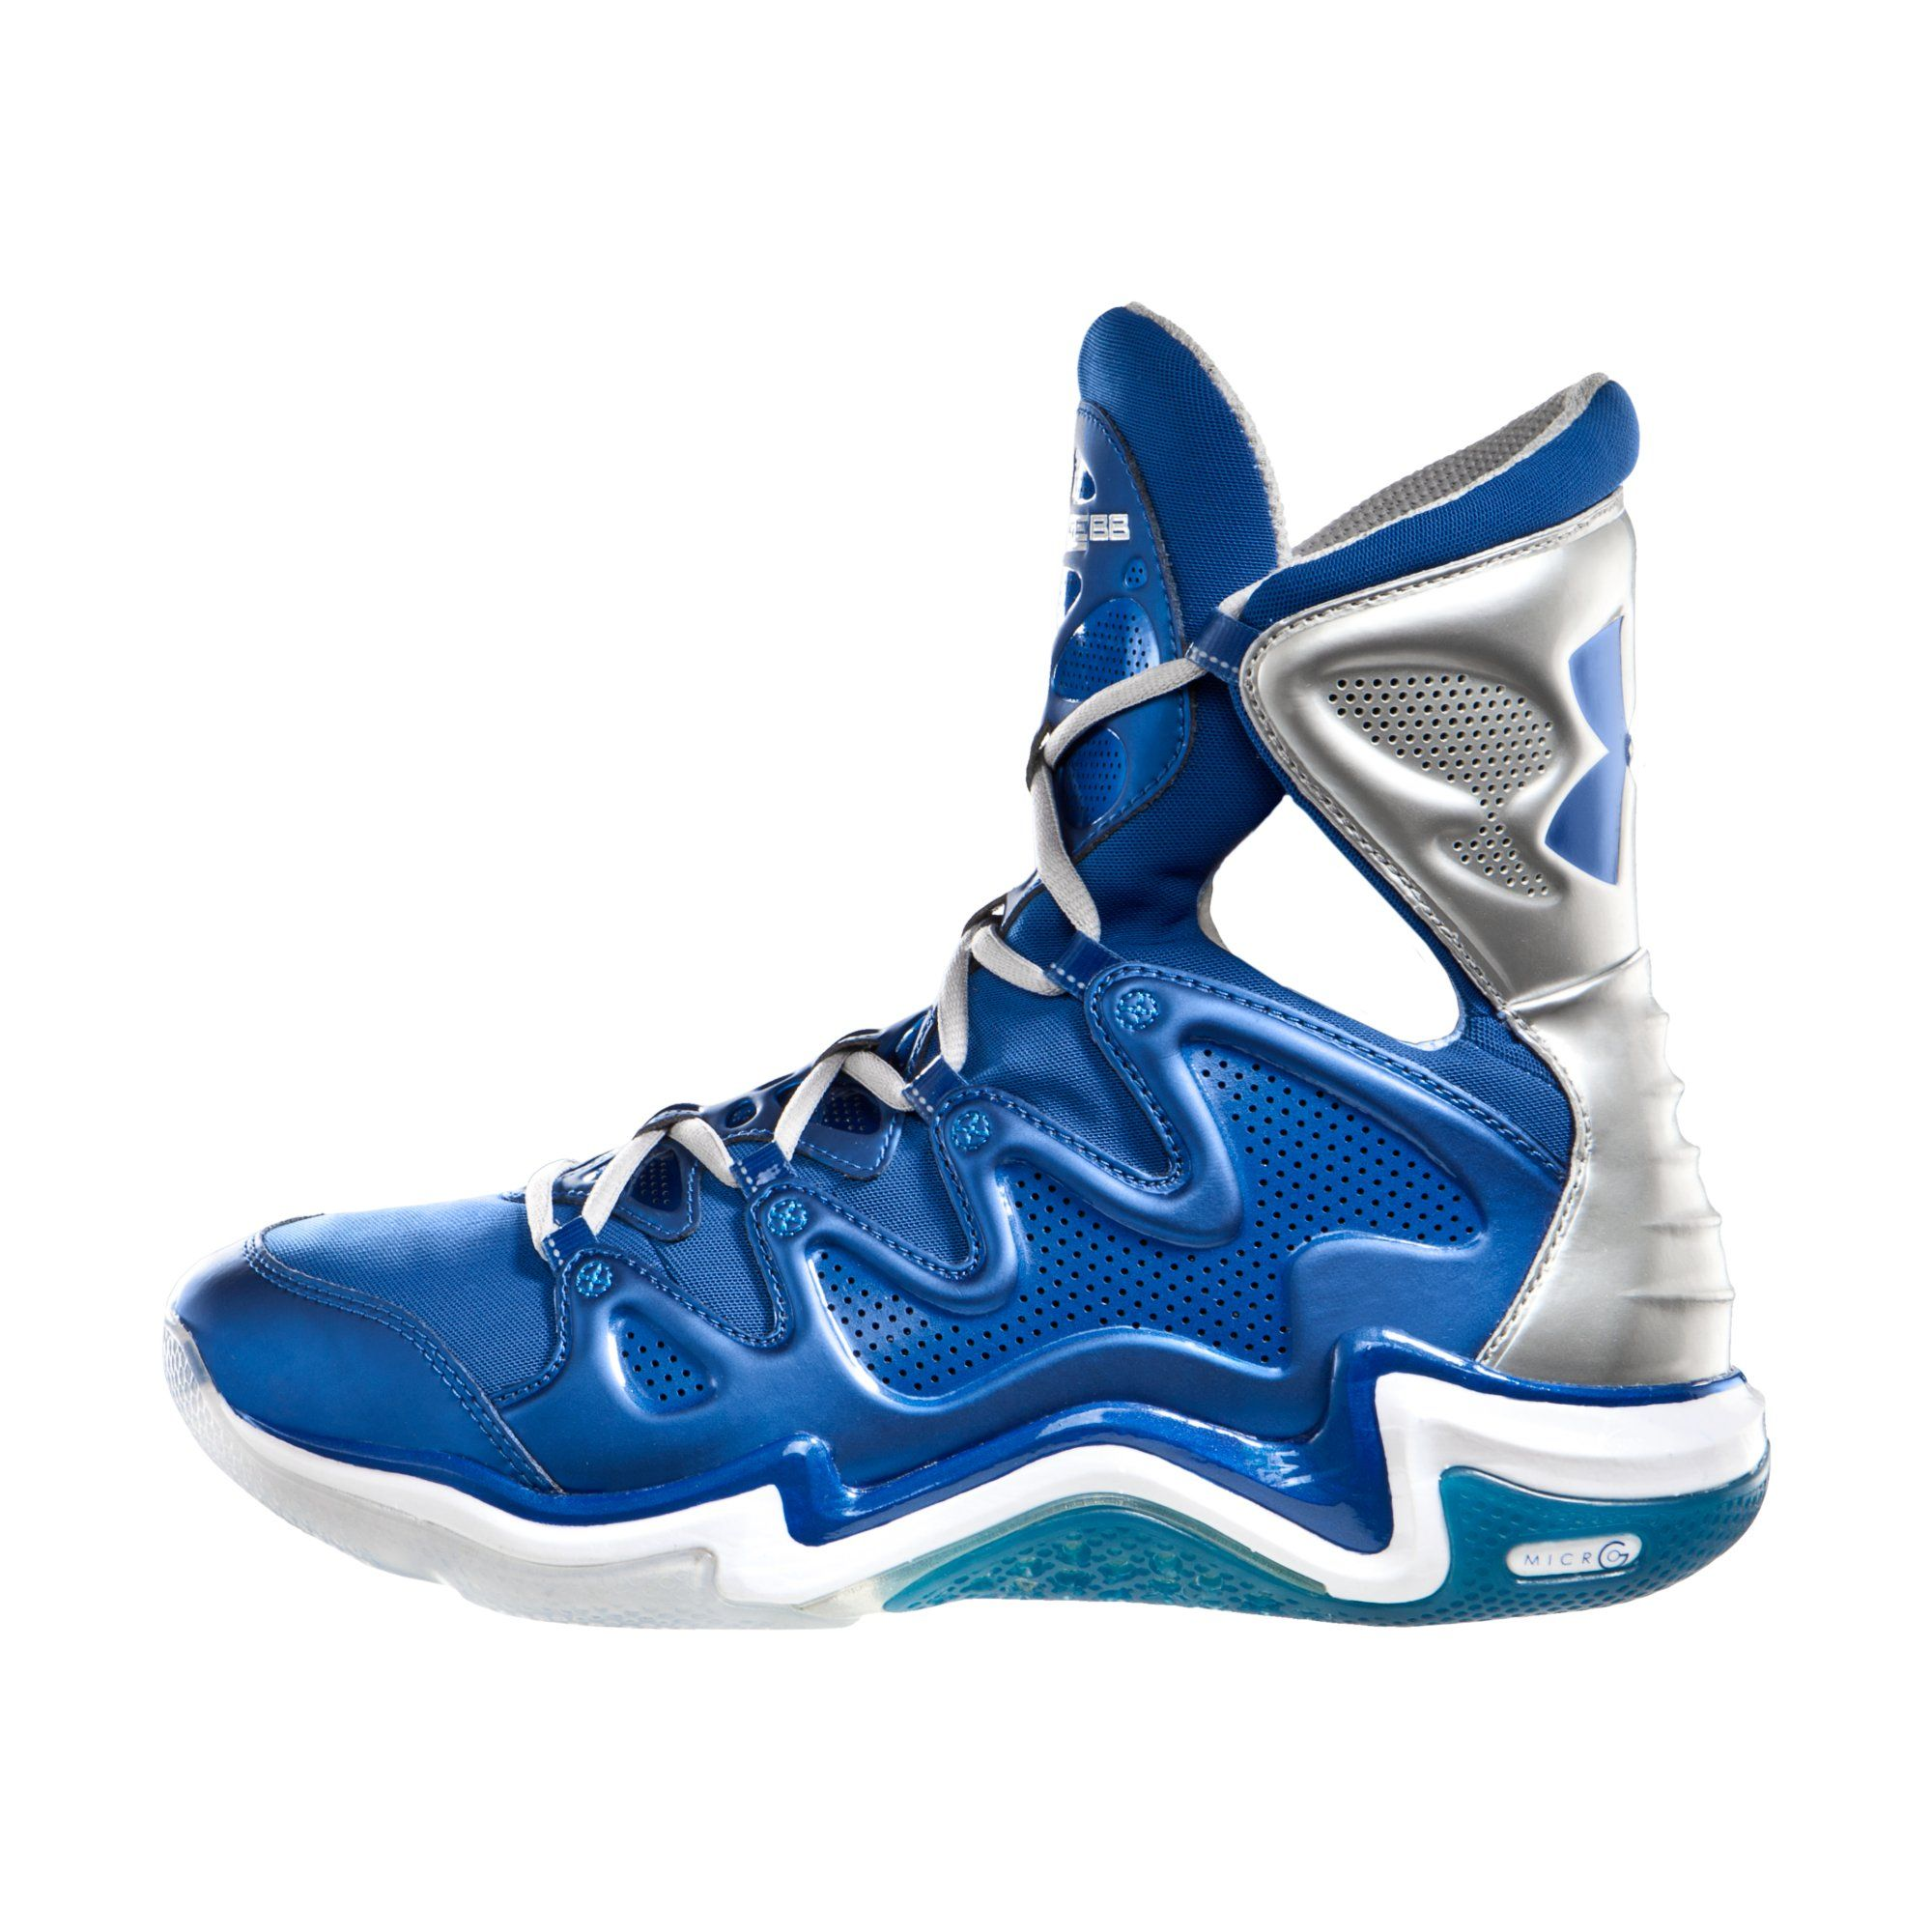 Under Armour Men s UA Charge BB Basketball Shoes-SO WANT ... fad0640b5